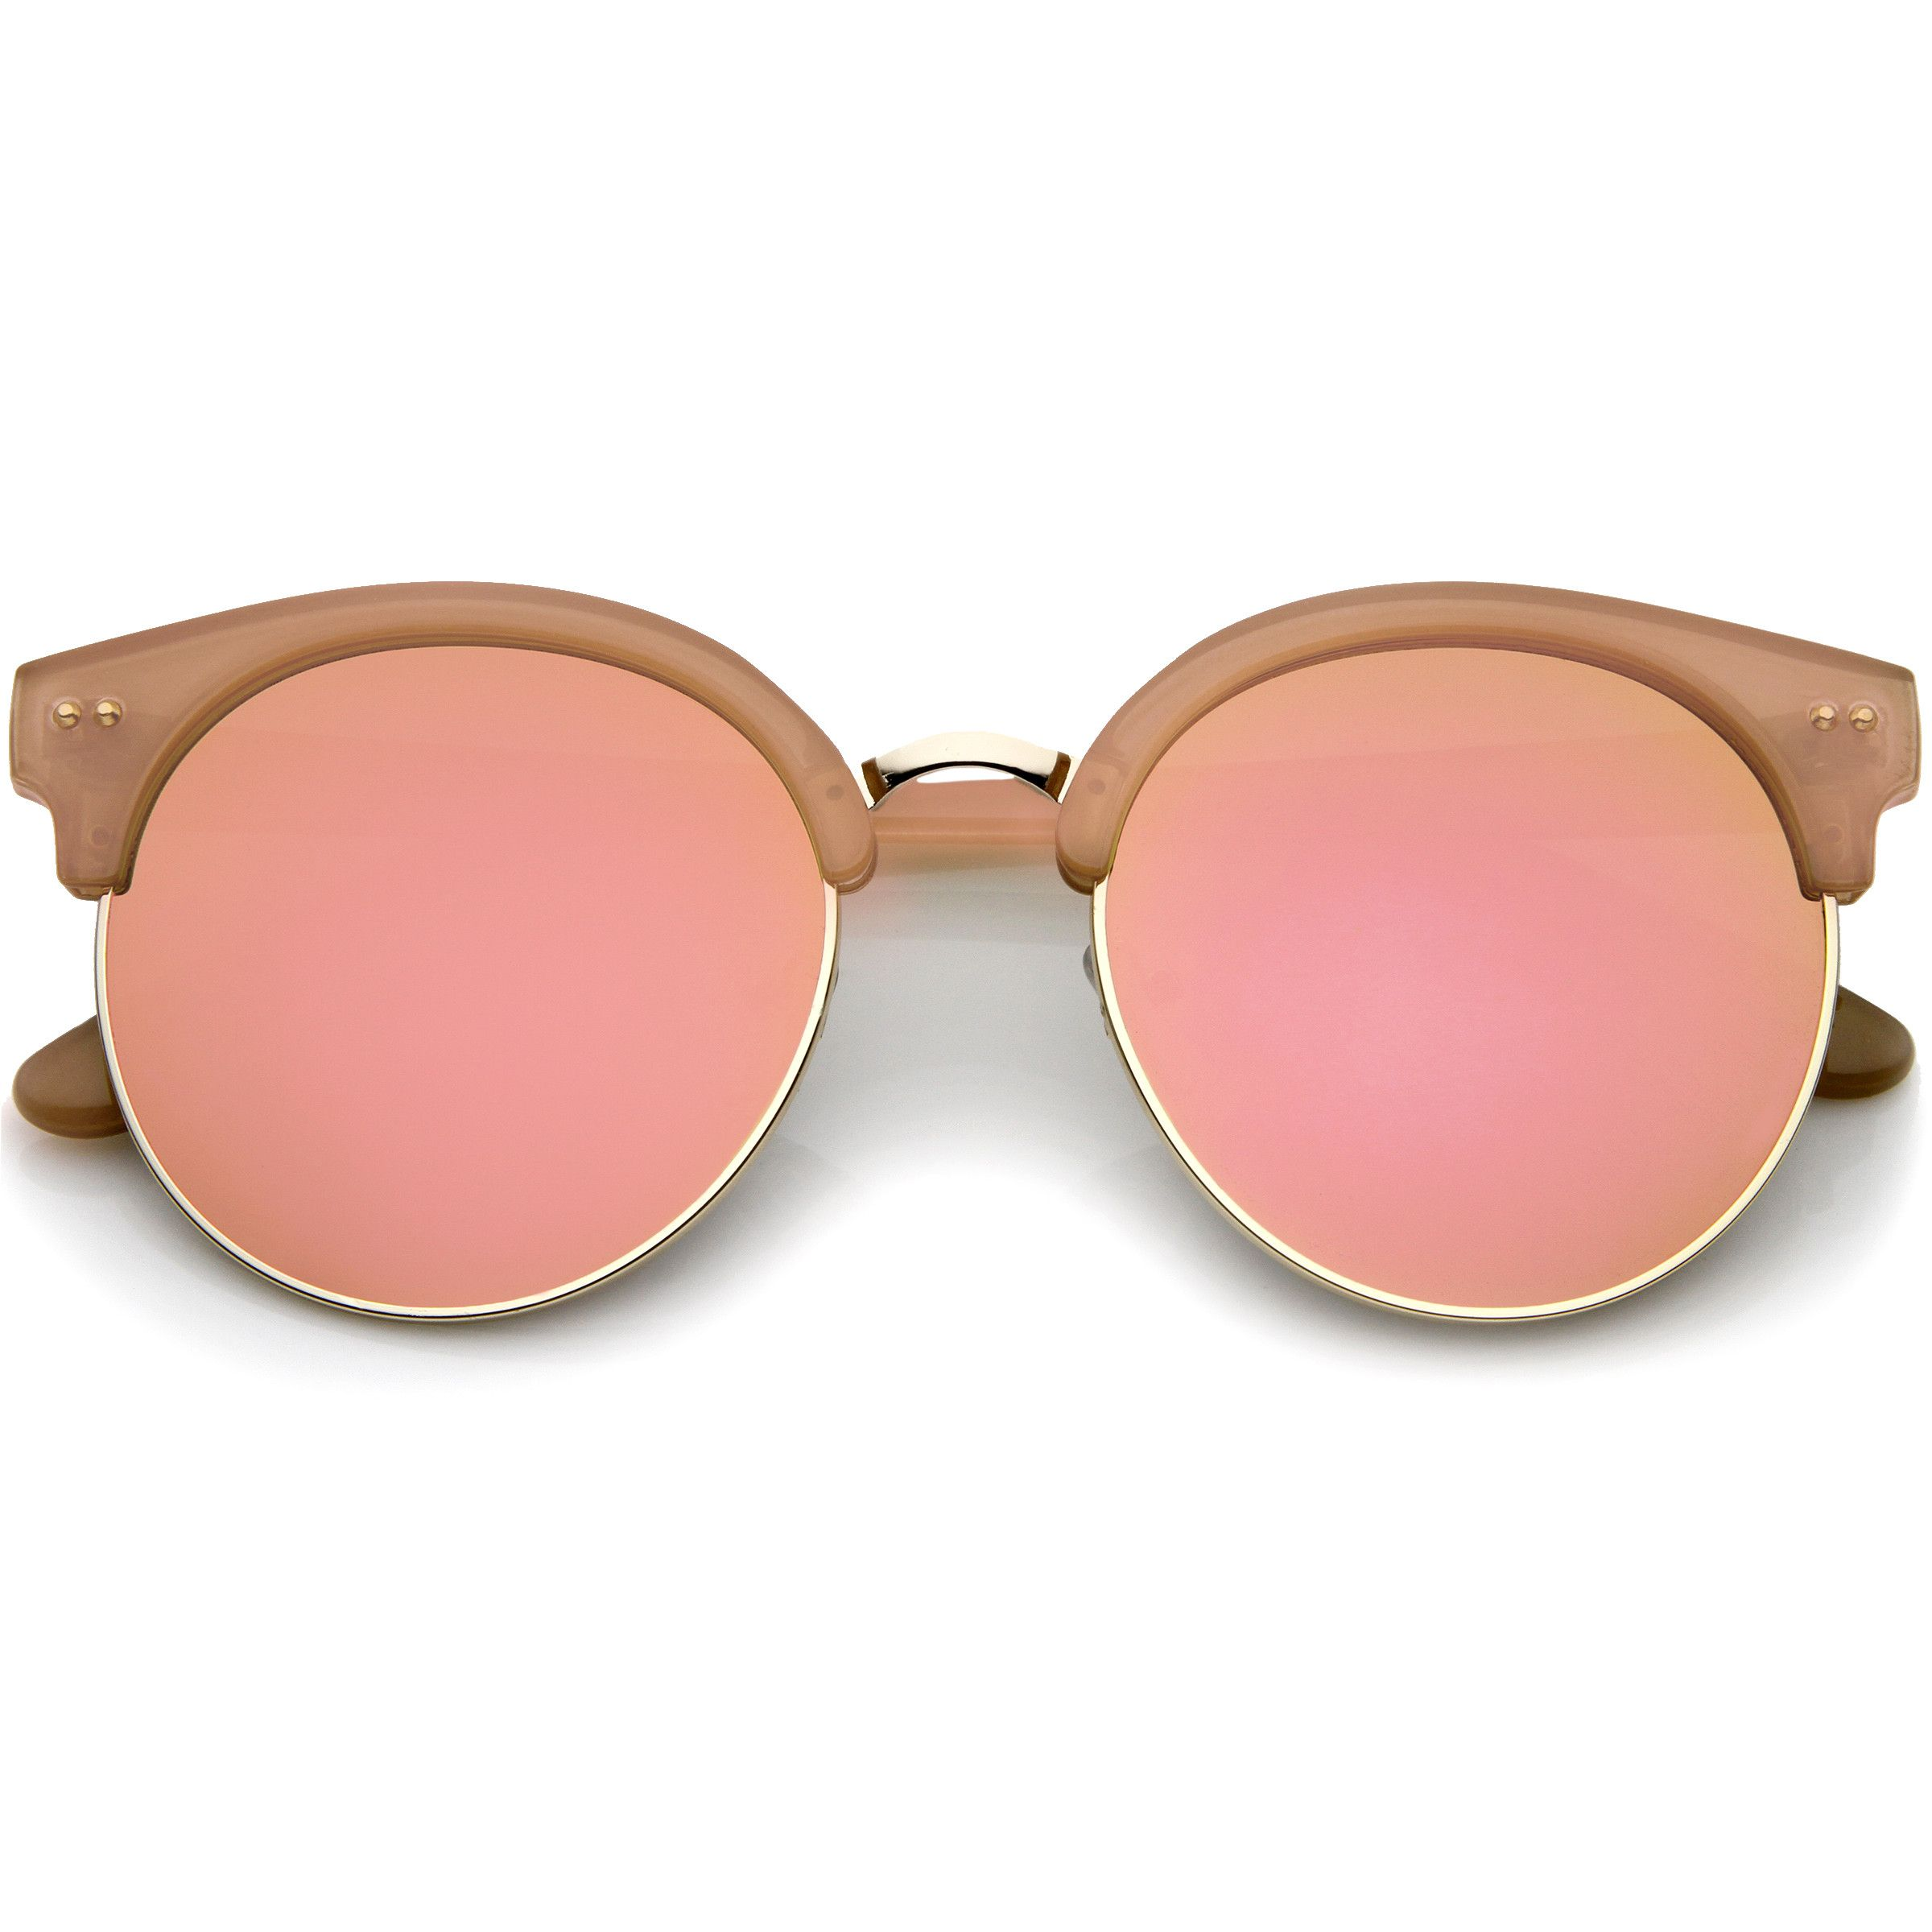 727c1121588e4 Glamorous round oversized half rimmed sunglasses that feature a round moon  cut shaped mirrored lenses and styled with flat lenses for less curvature  of the ...